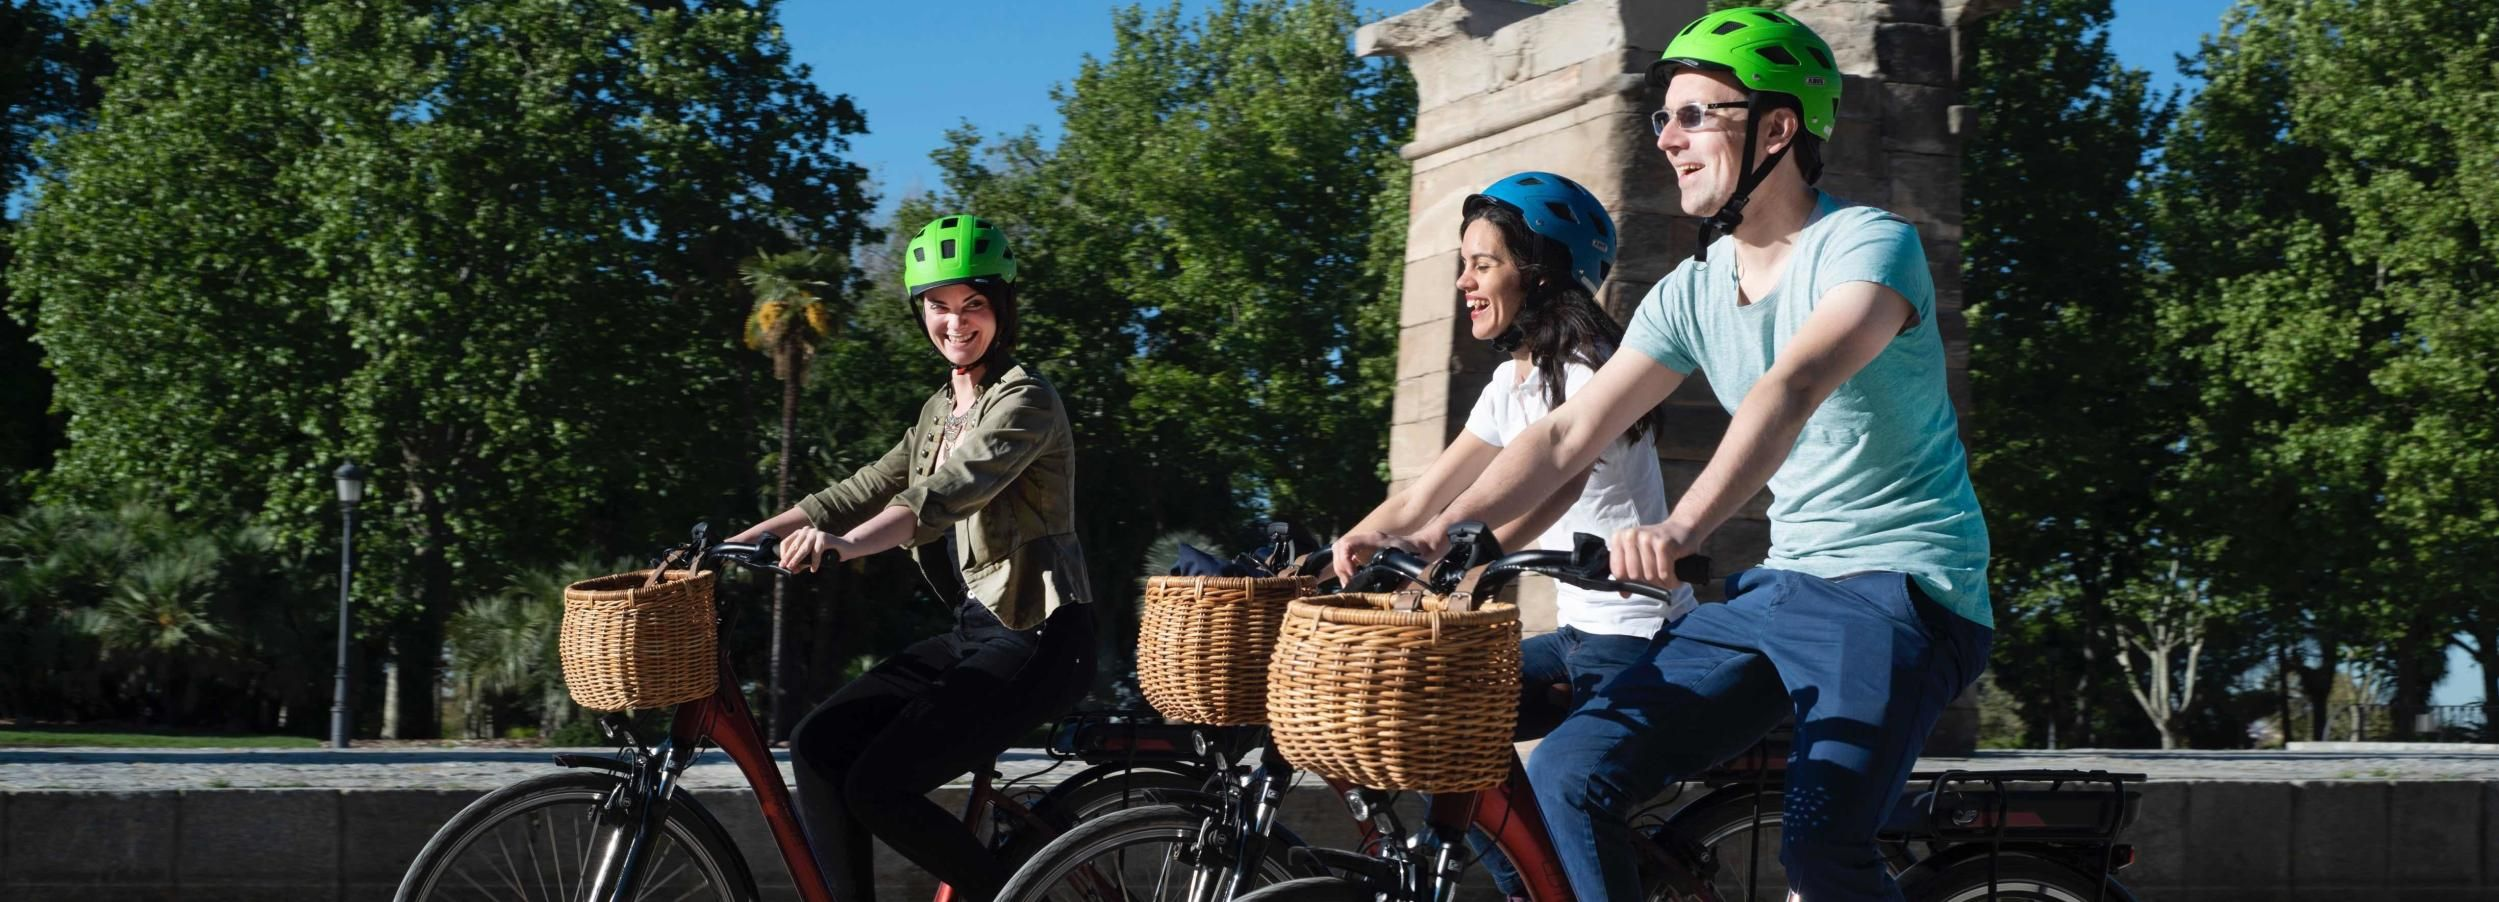 Madrid: 1,5-stündige Top 10 E-Bike-Besichtigungstour